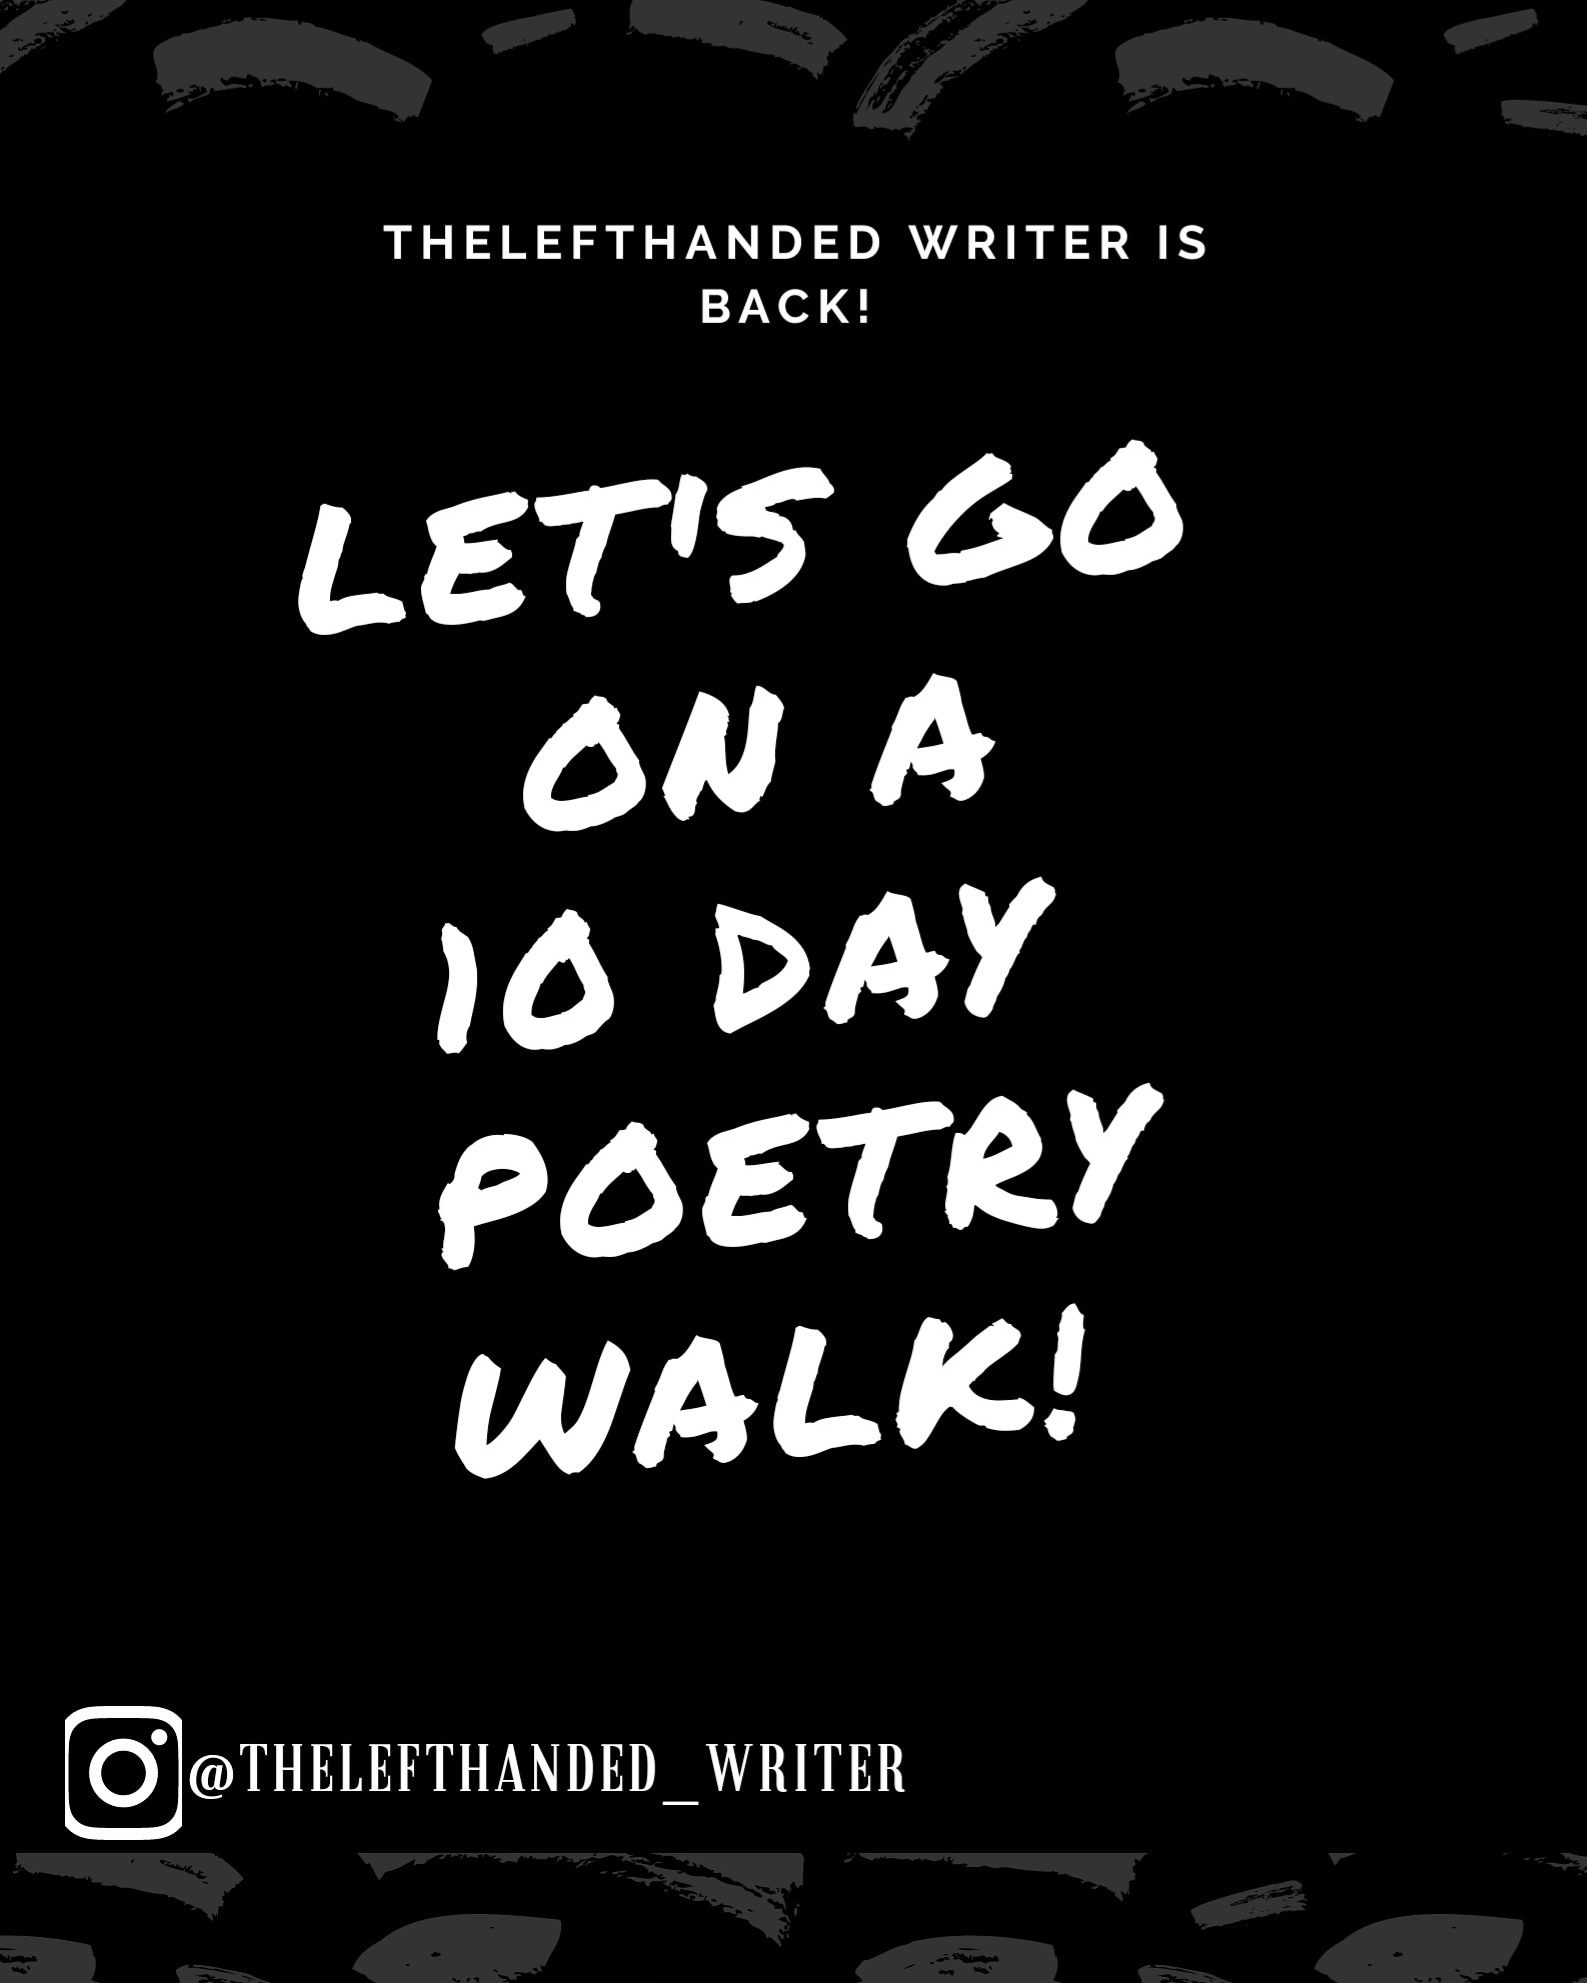 TheLefthandedwriter's 10 Day Poetry Walk – Pain